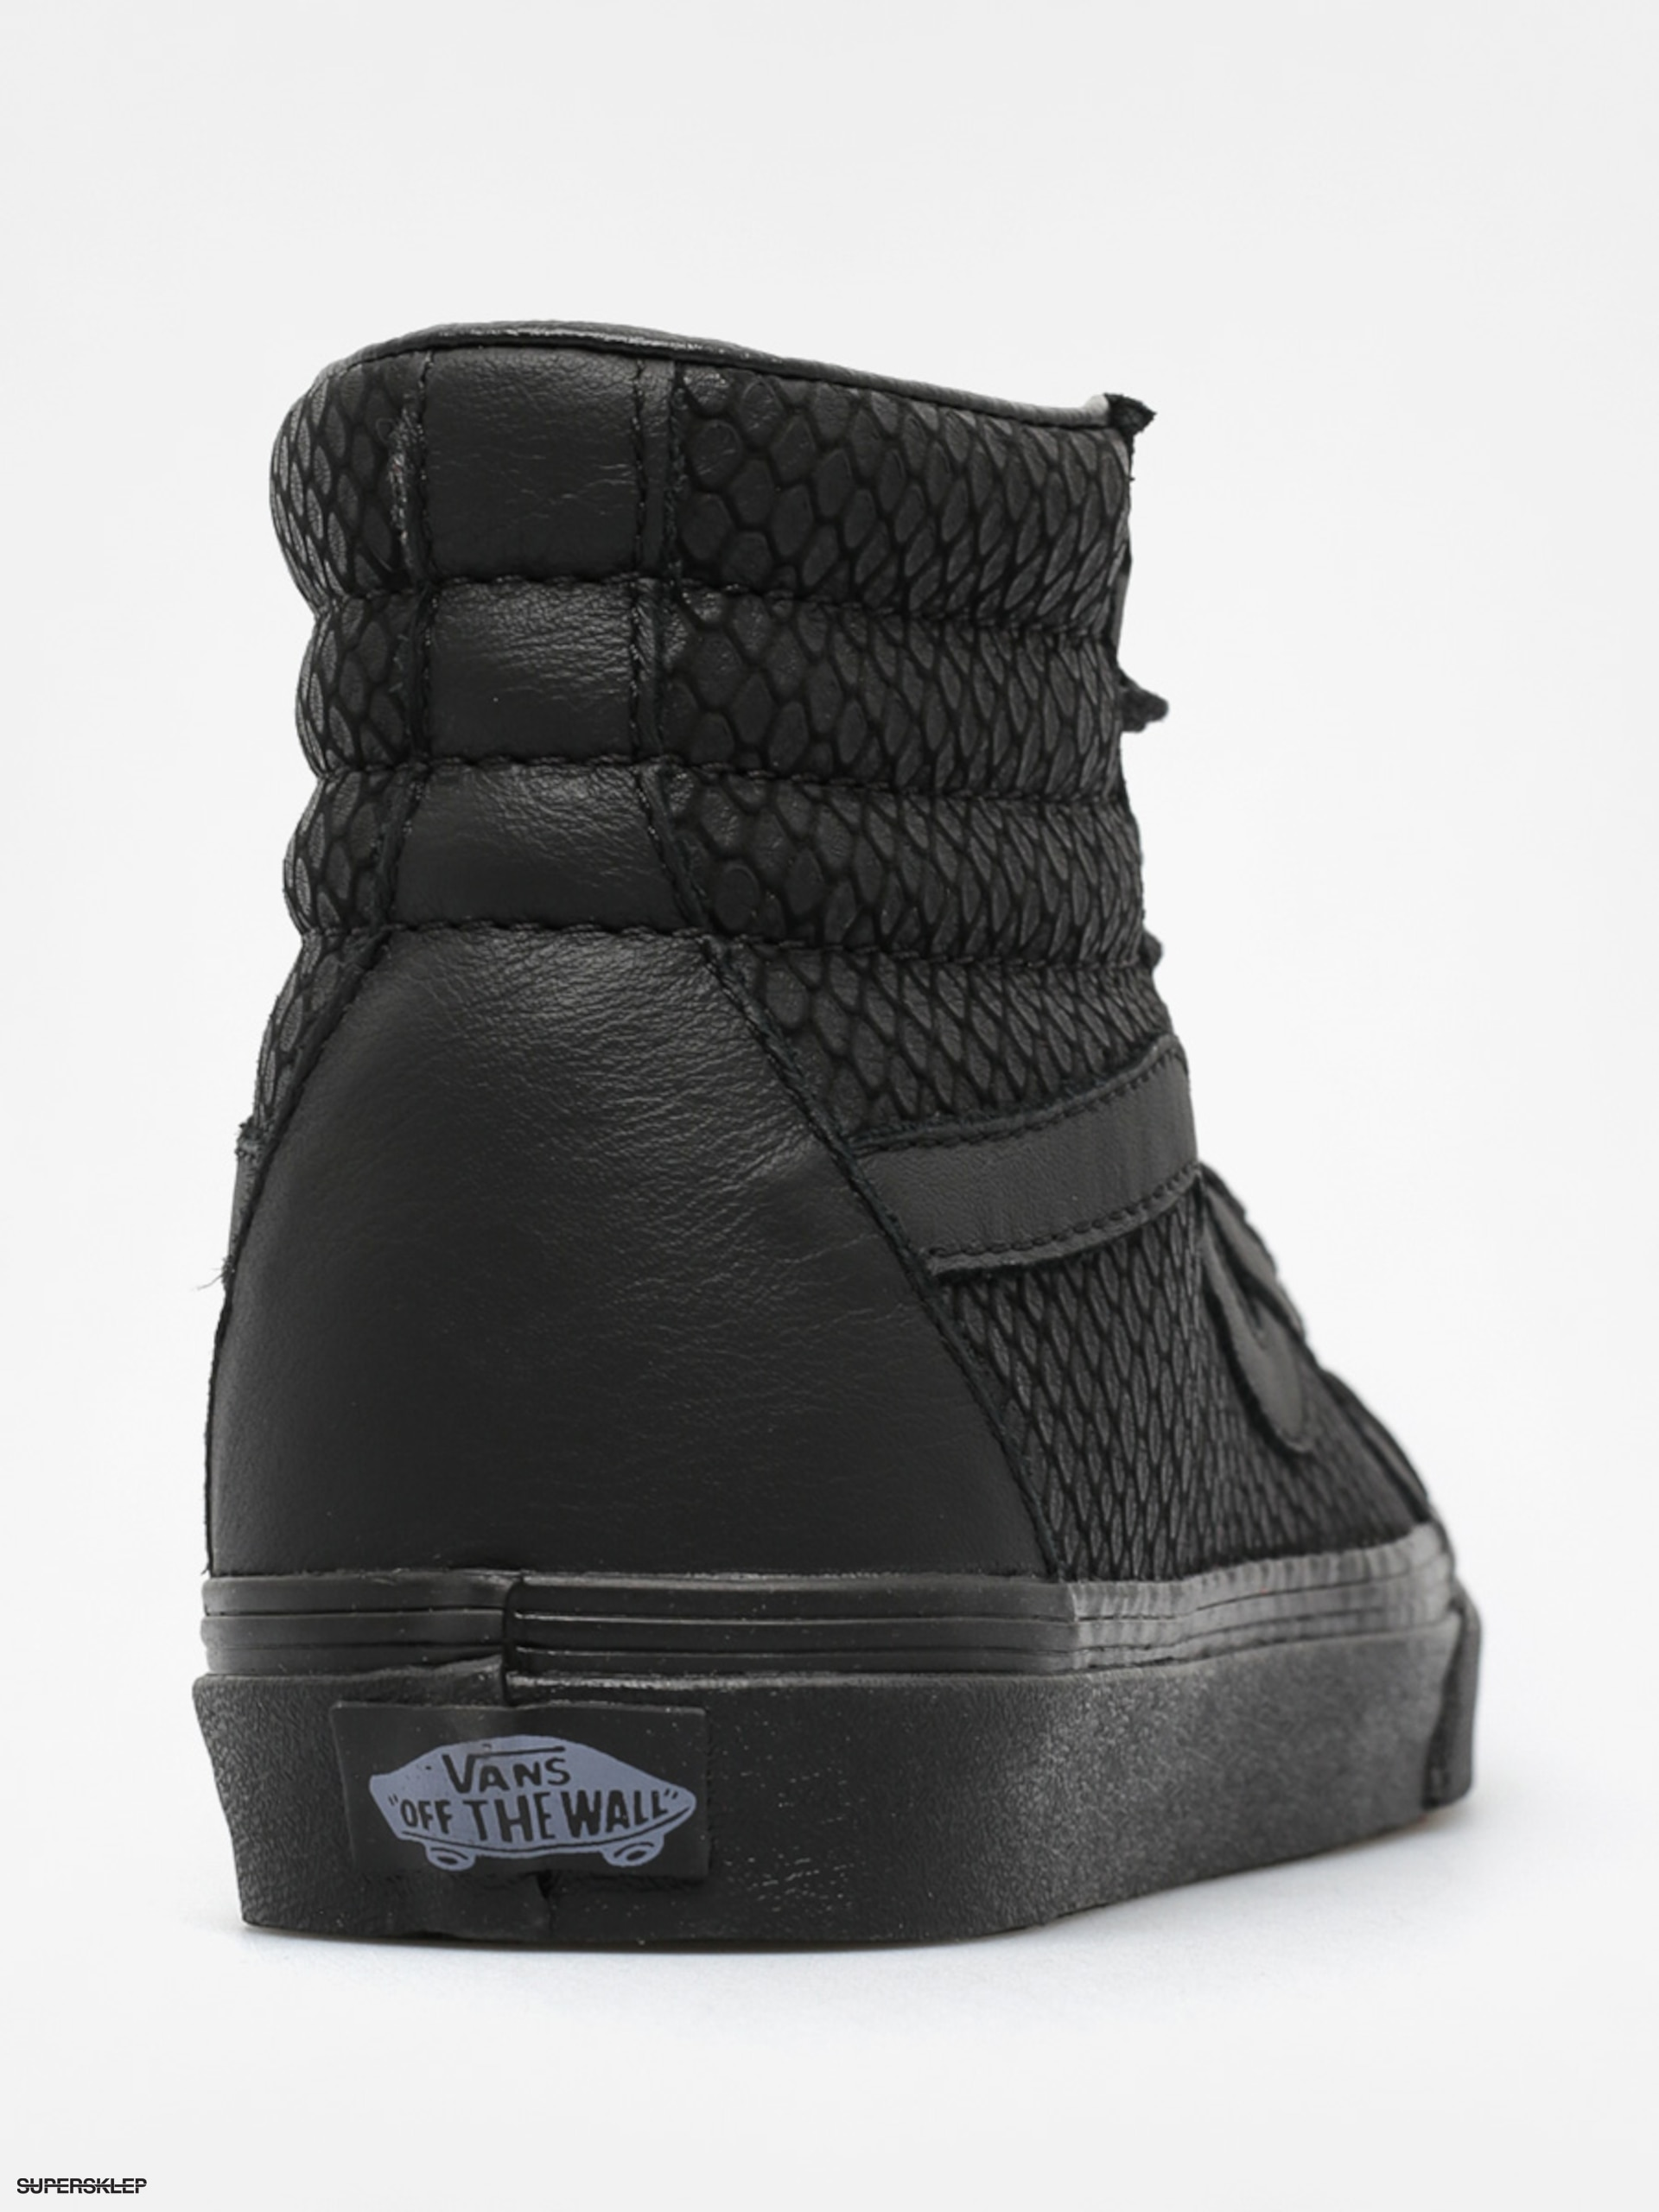 Vans Boty Sk8 Hi Reissue + (snake leather black) 2ca7e762b9e